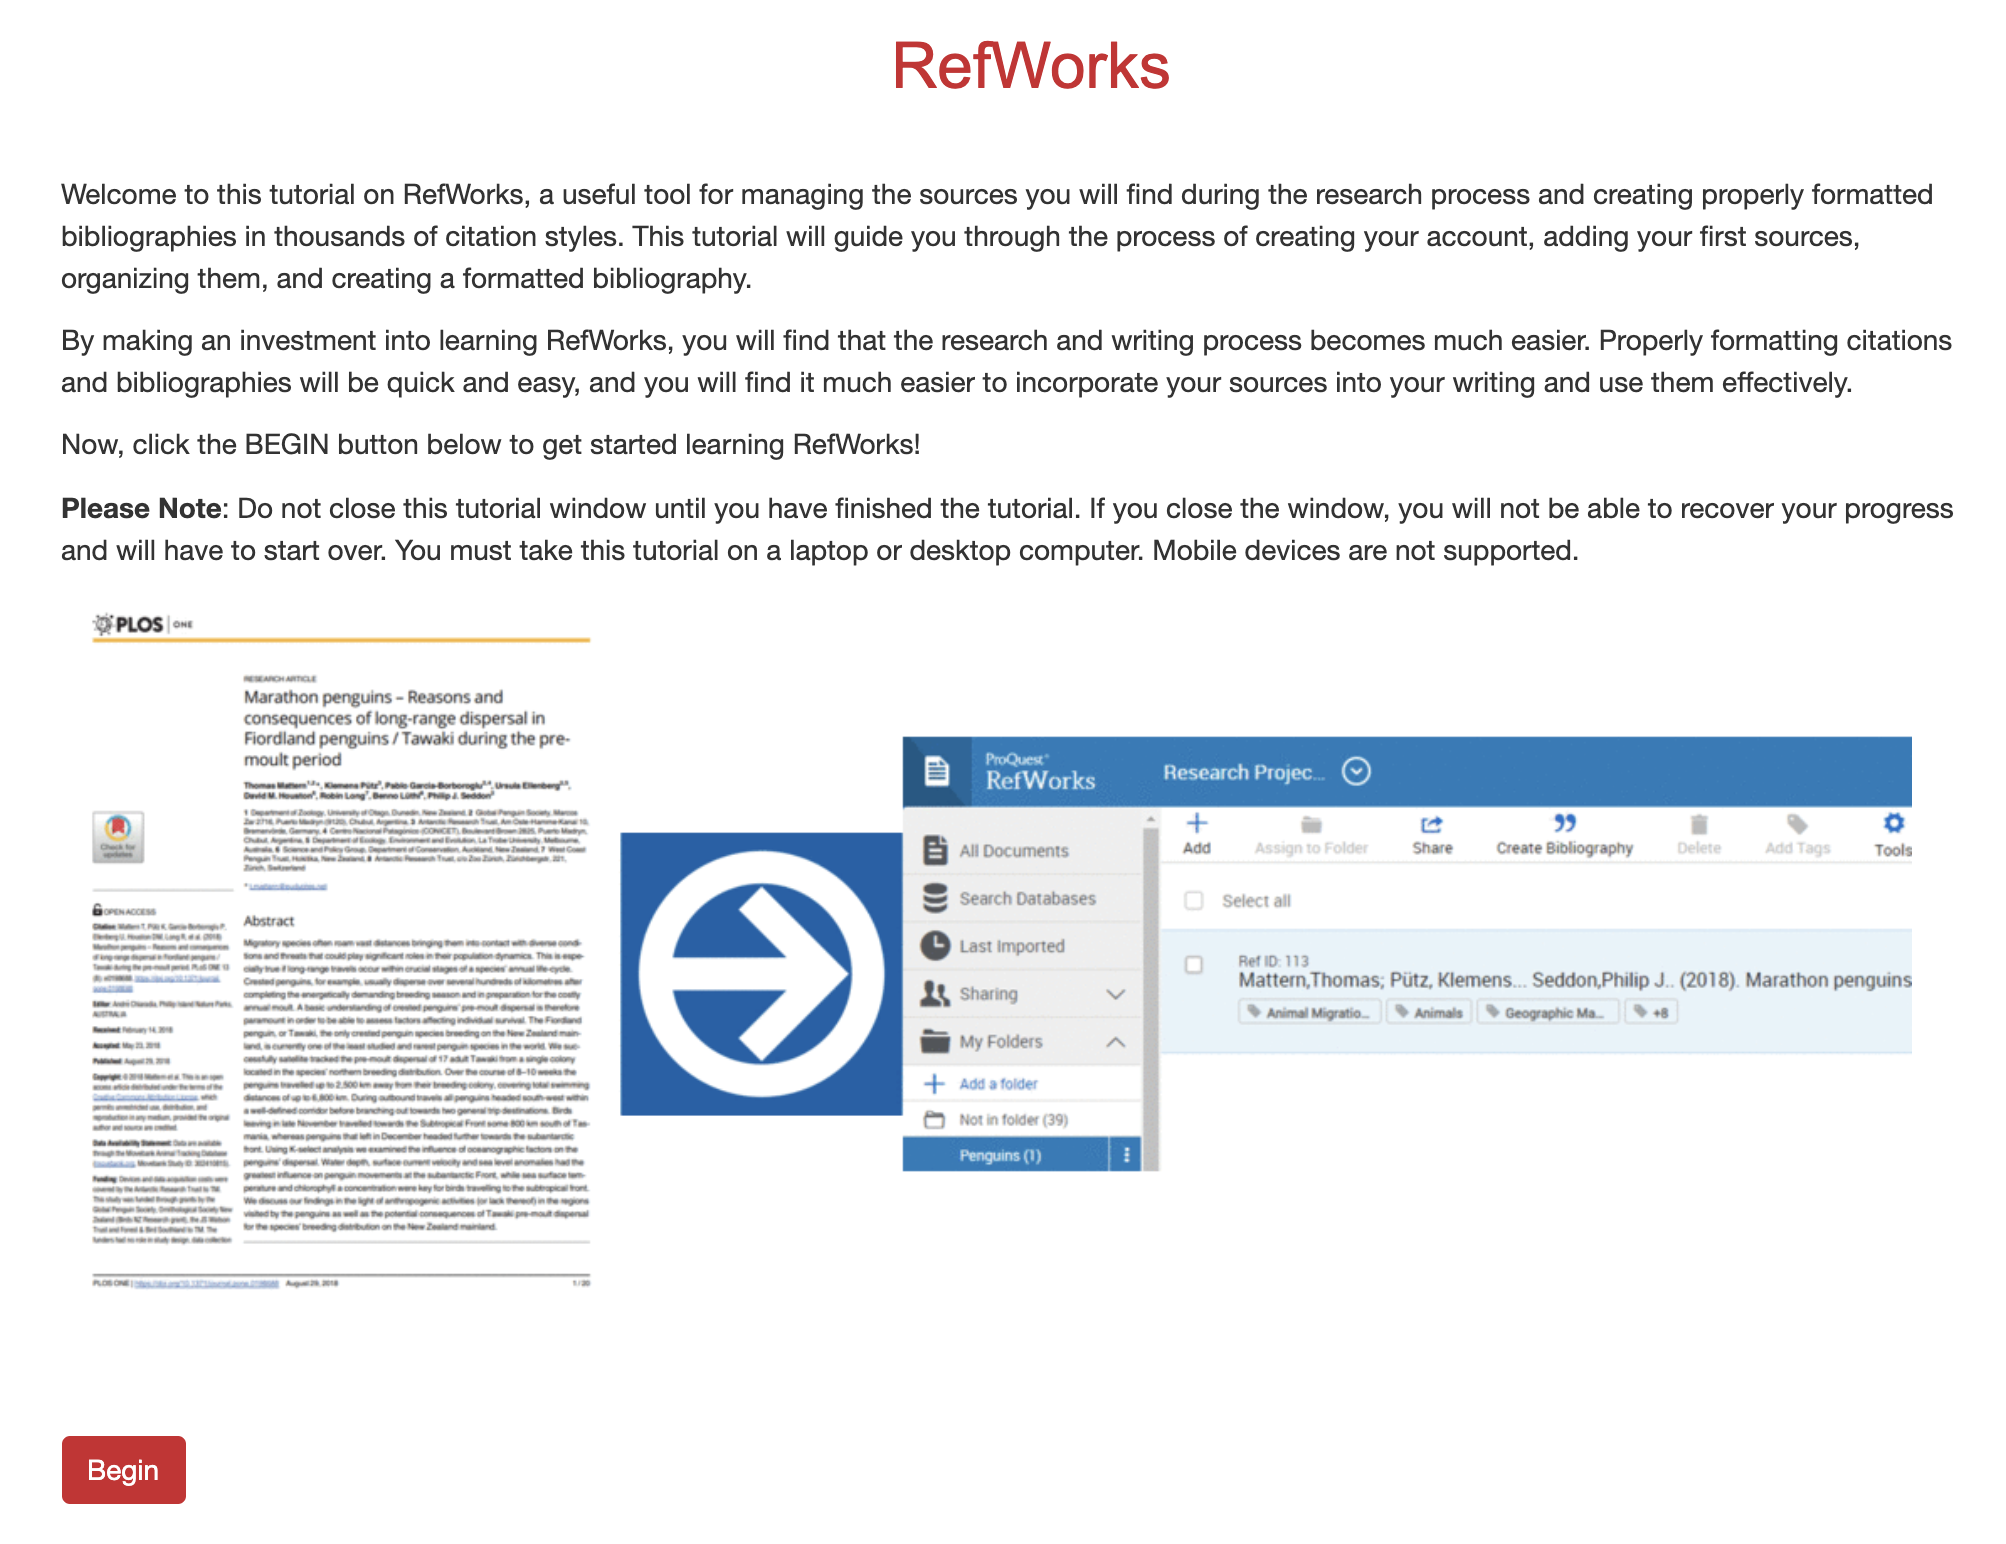 Learning to Use RefWorks